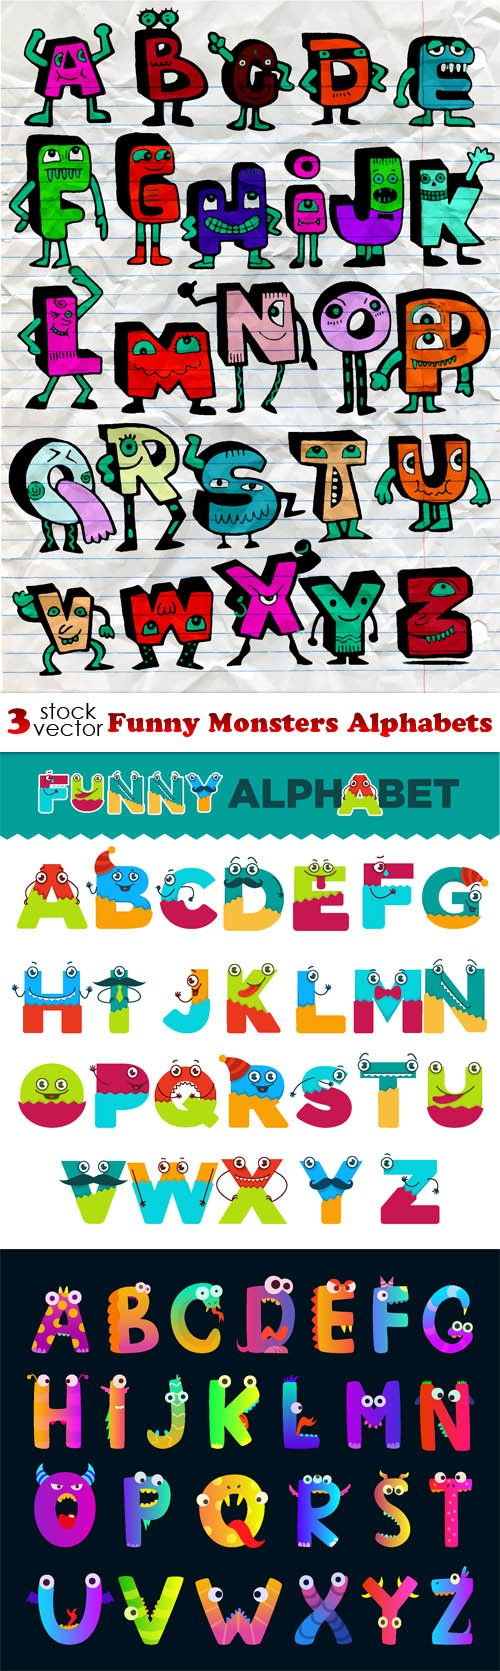 Vectors - Funny Monsters Alphabets